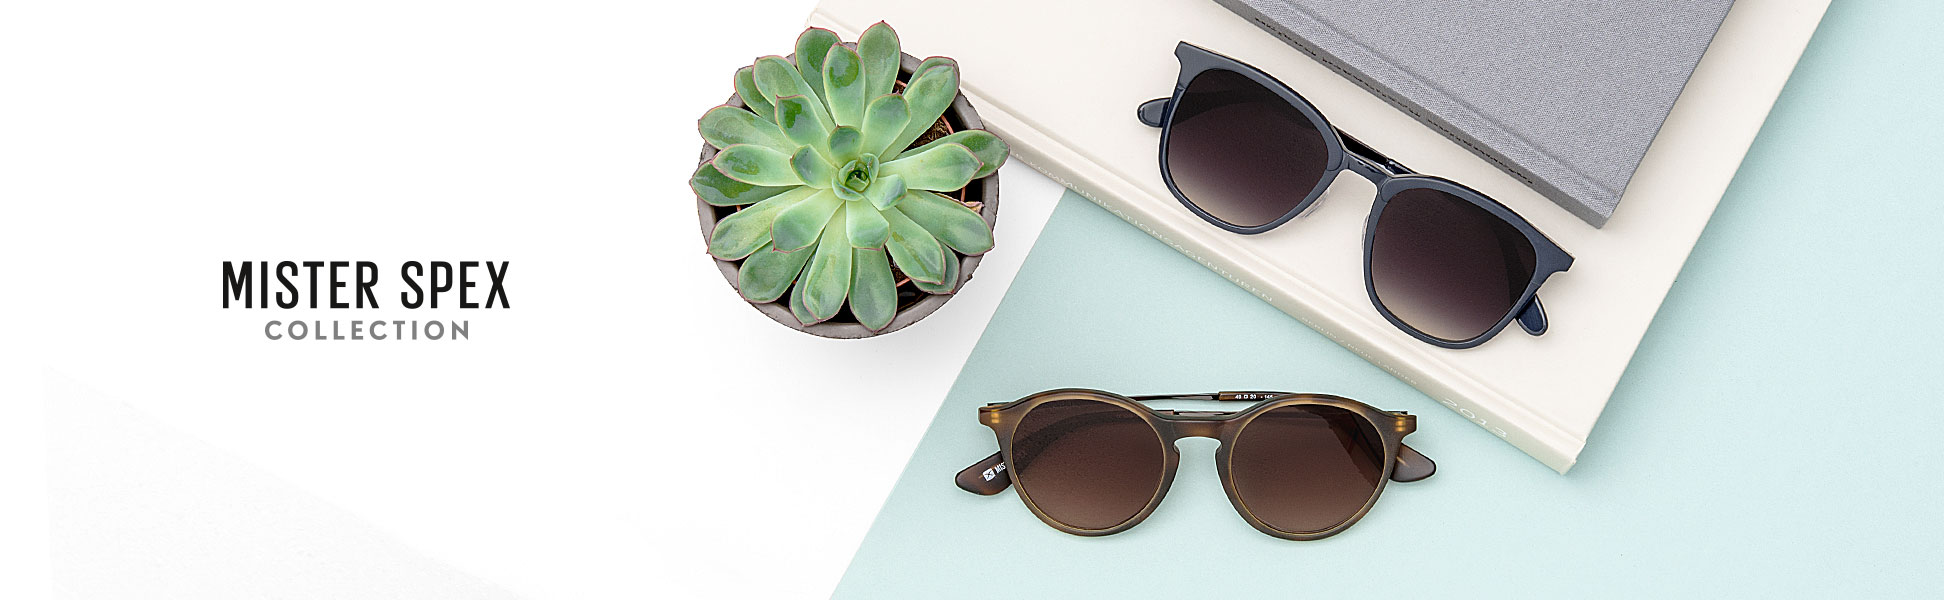 a399be2987 Mister Spex Collection Women s Sunglasses at Mister Spex UK